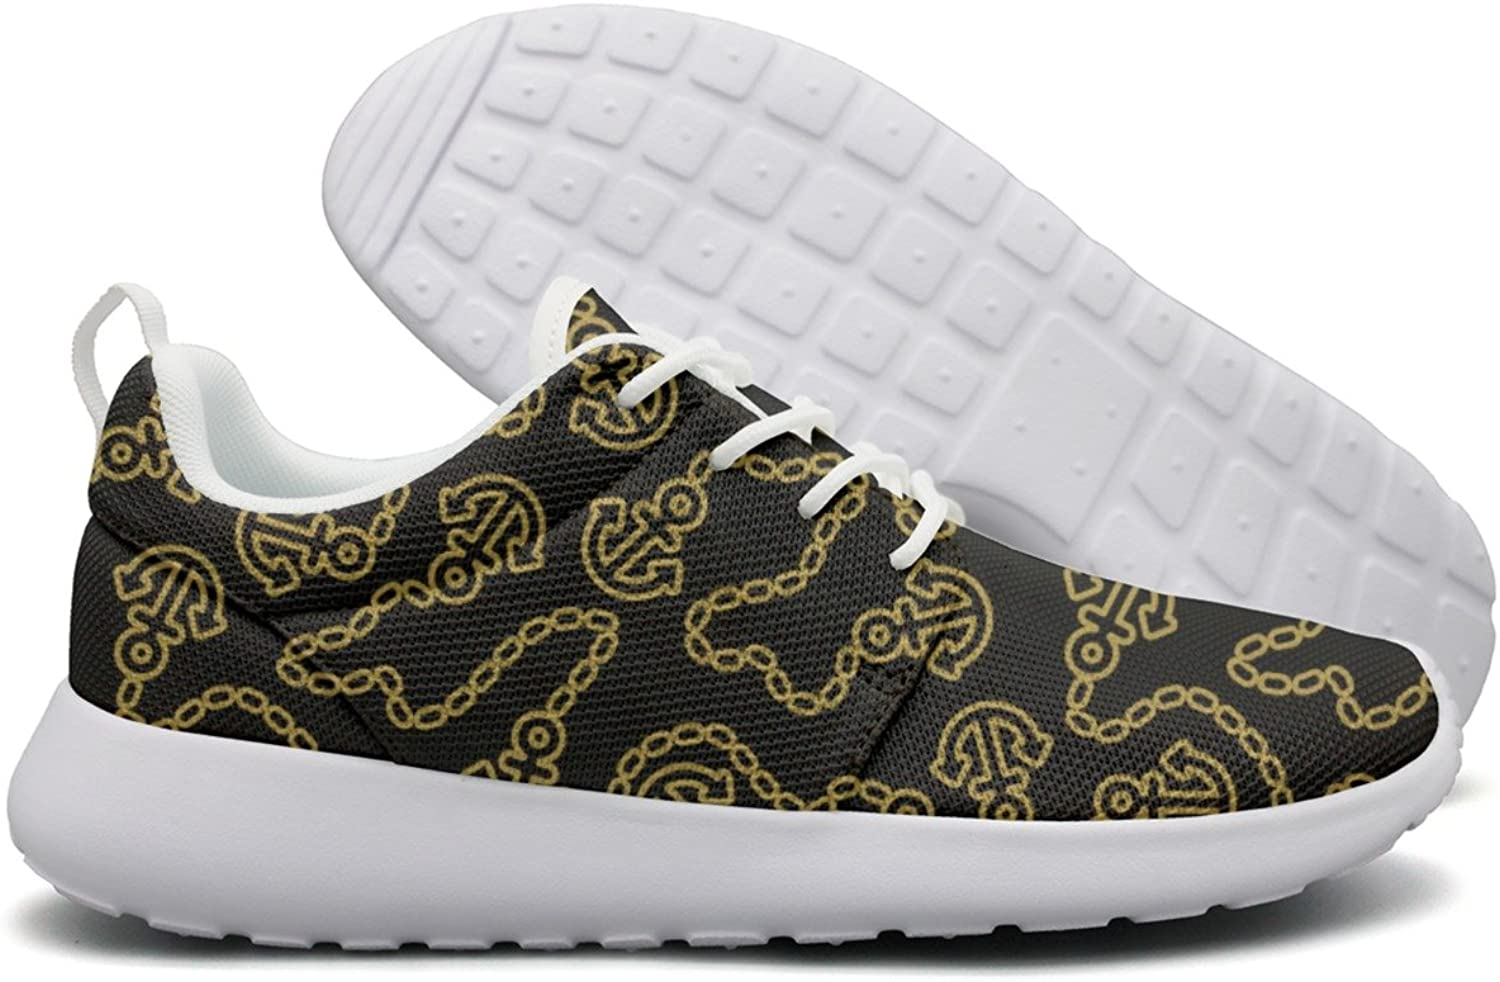 Hoohle Sports Boat Anchor Chain and Rope Black Women Roshe One Flex Mesh Mens Running shoes